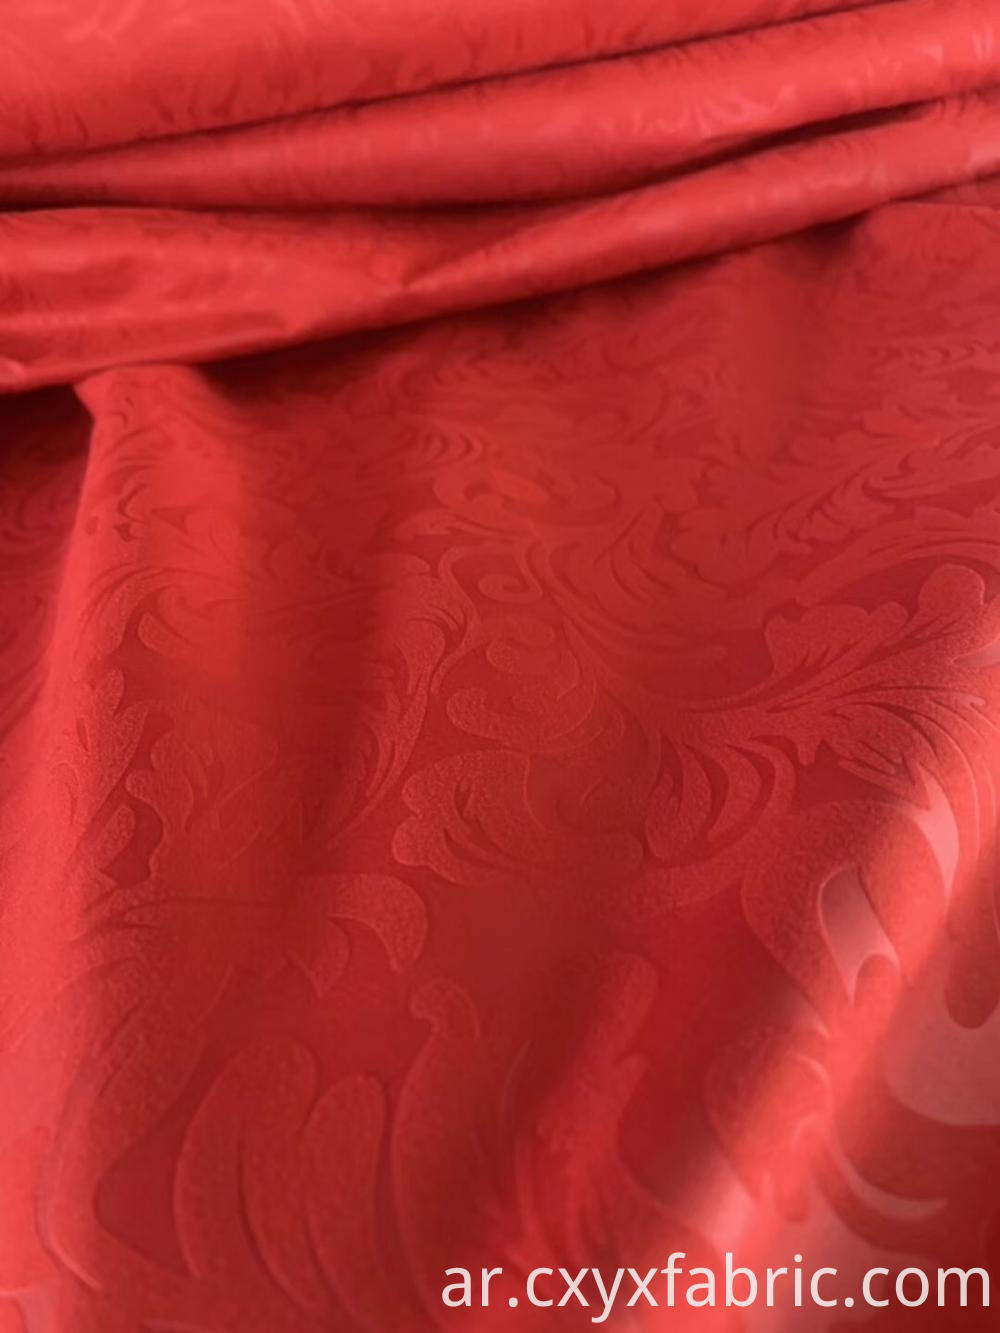 Dyed Emboss Fabric